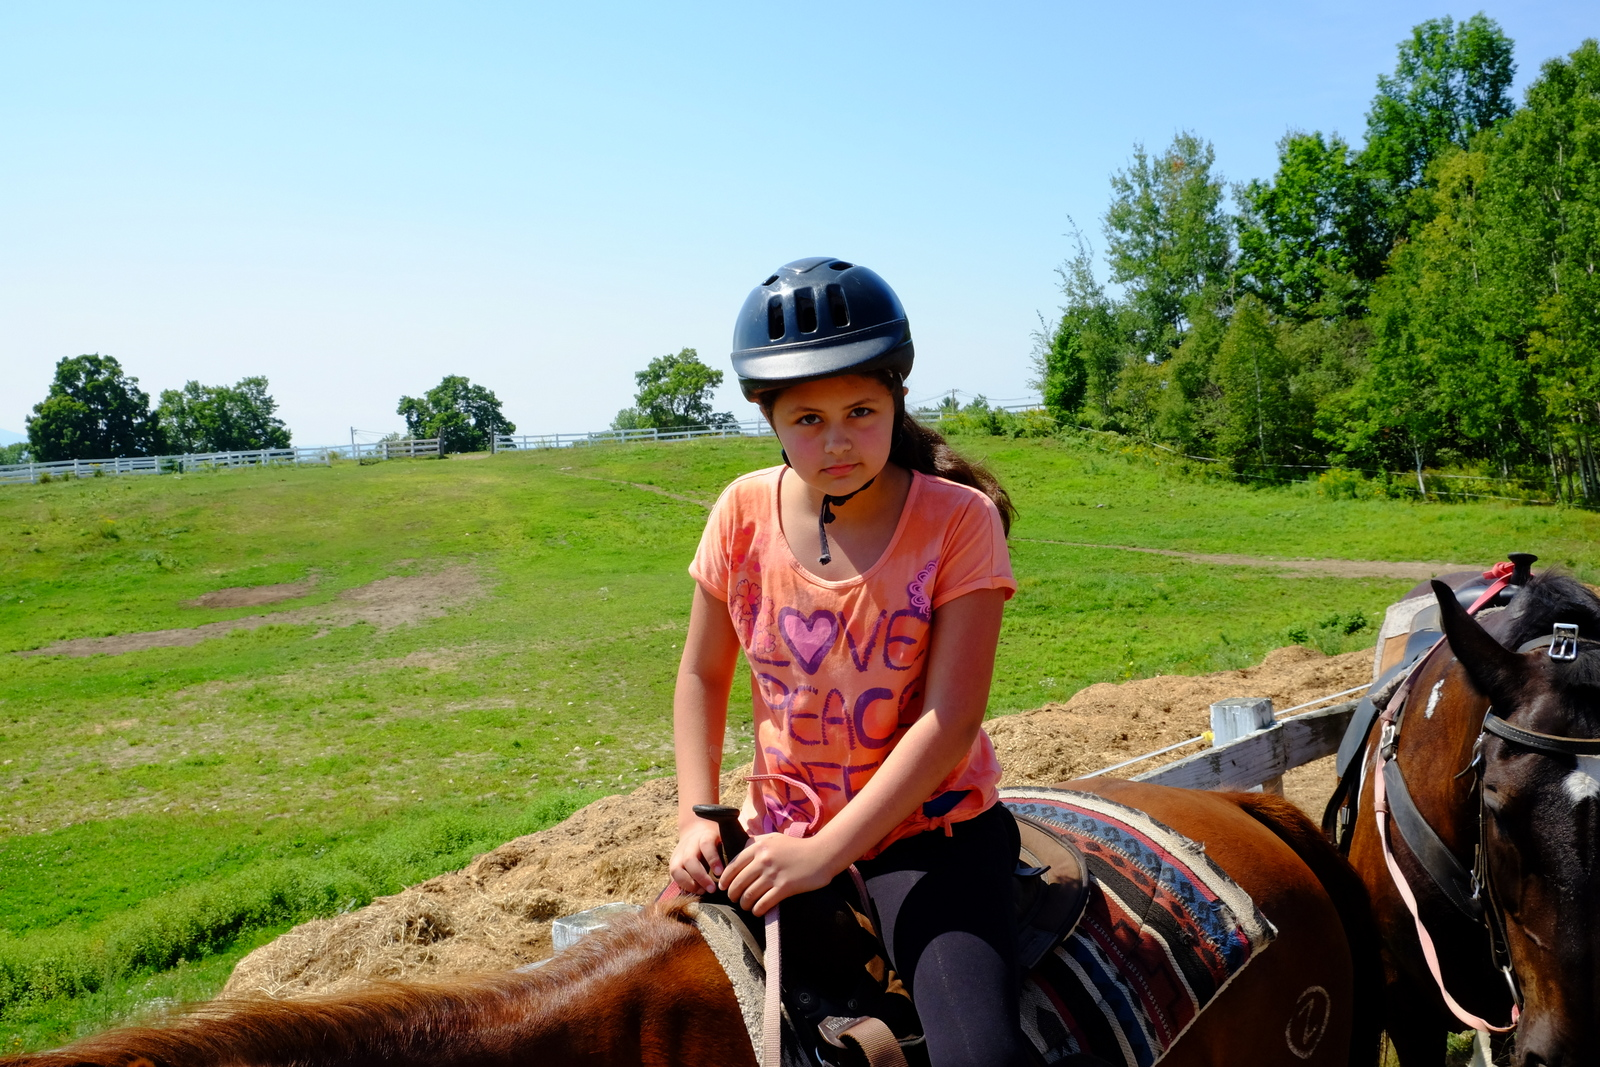 Was Quite The Experience Quite The Treat Too Very Relaxing And Obviously Enjoyable Brilliantly Docile Horses Piece Of Cake To Ride And